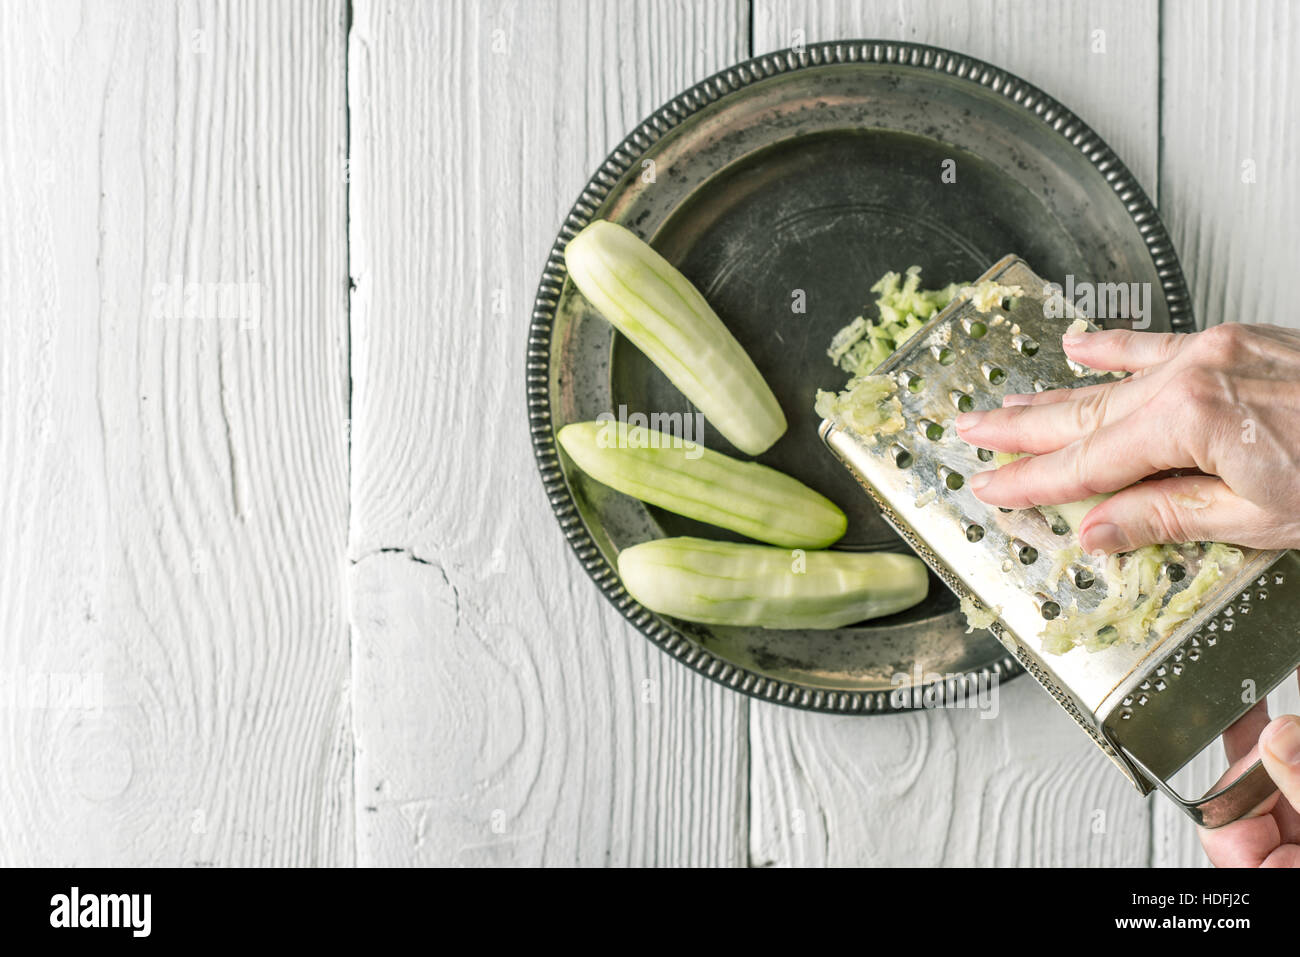 Grate cucumbers in the metal plate top view - Stock Image